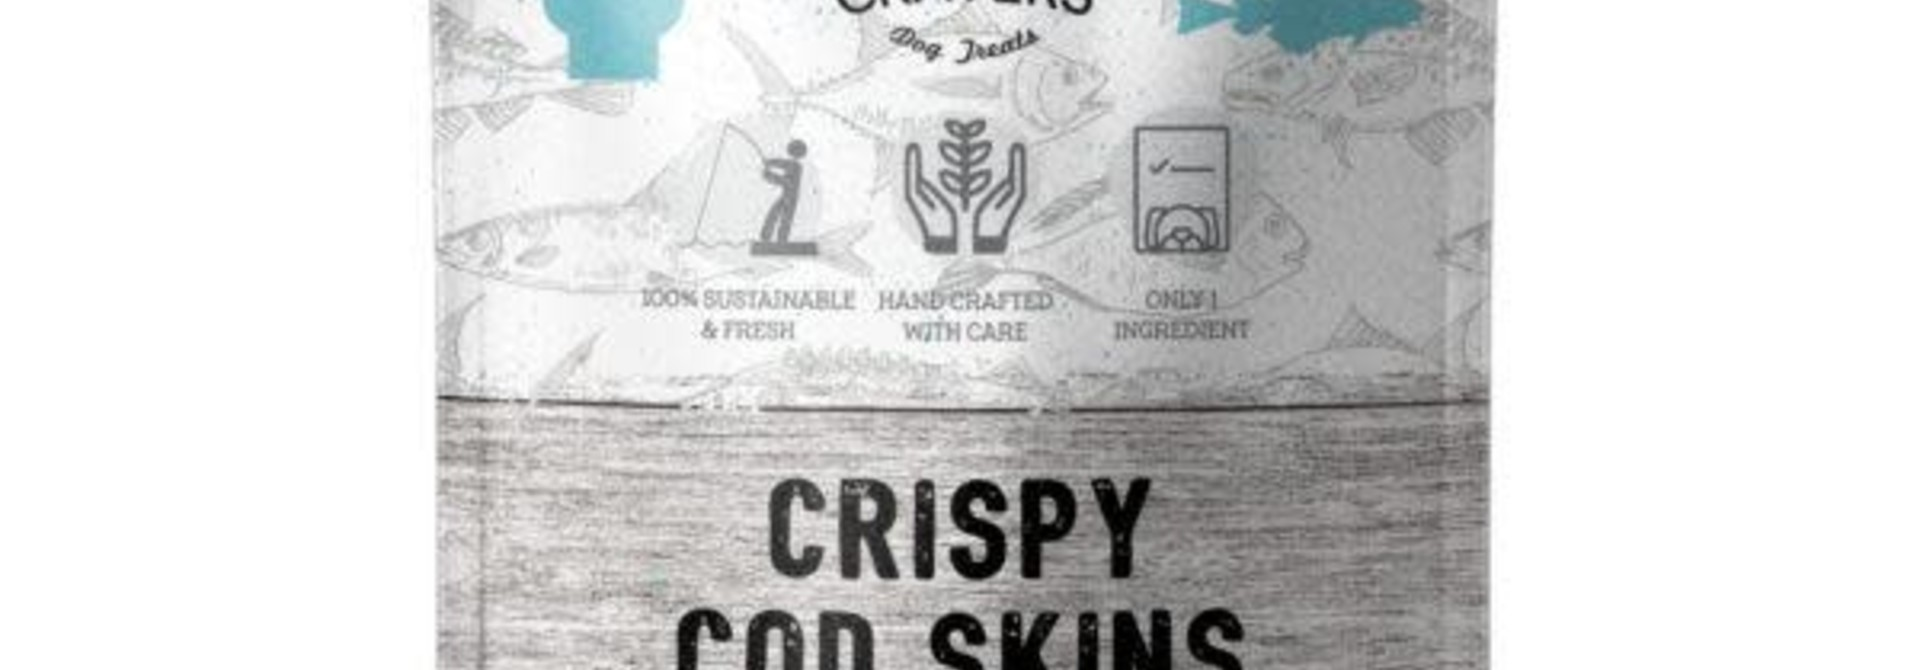 Canine Cravers Crispy Cod Skins Dog Treats